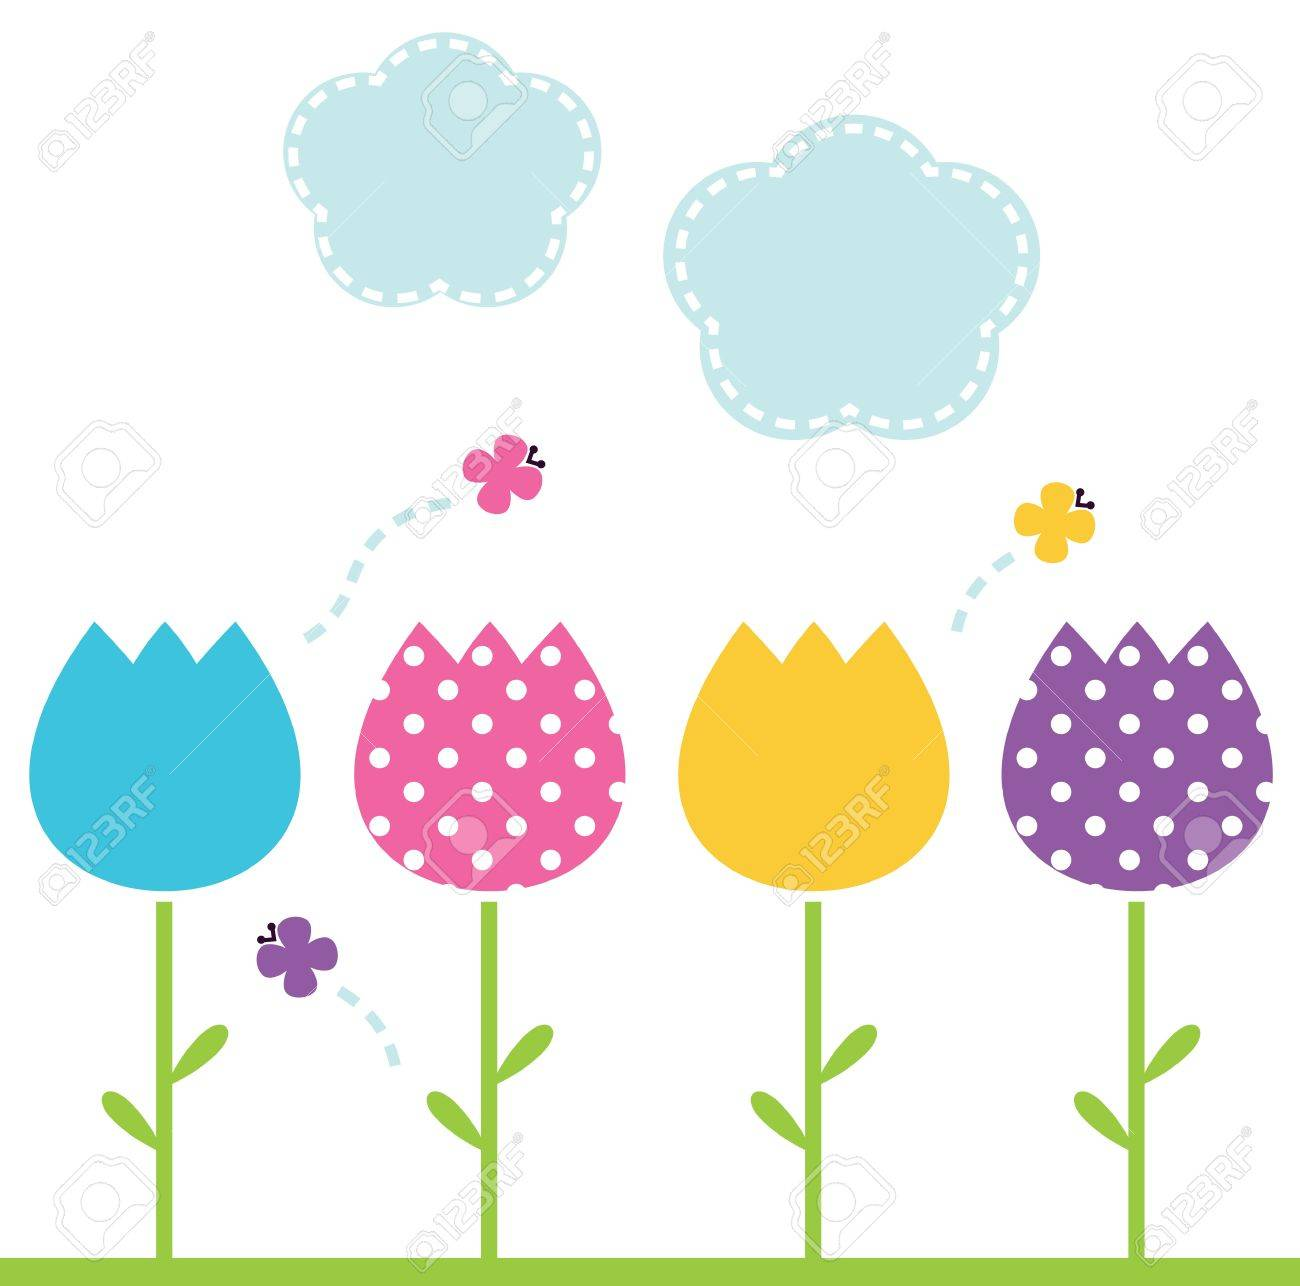 Row Of Tulips Clipart - Floral delivery